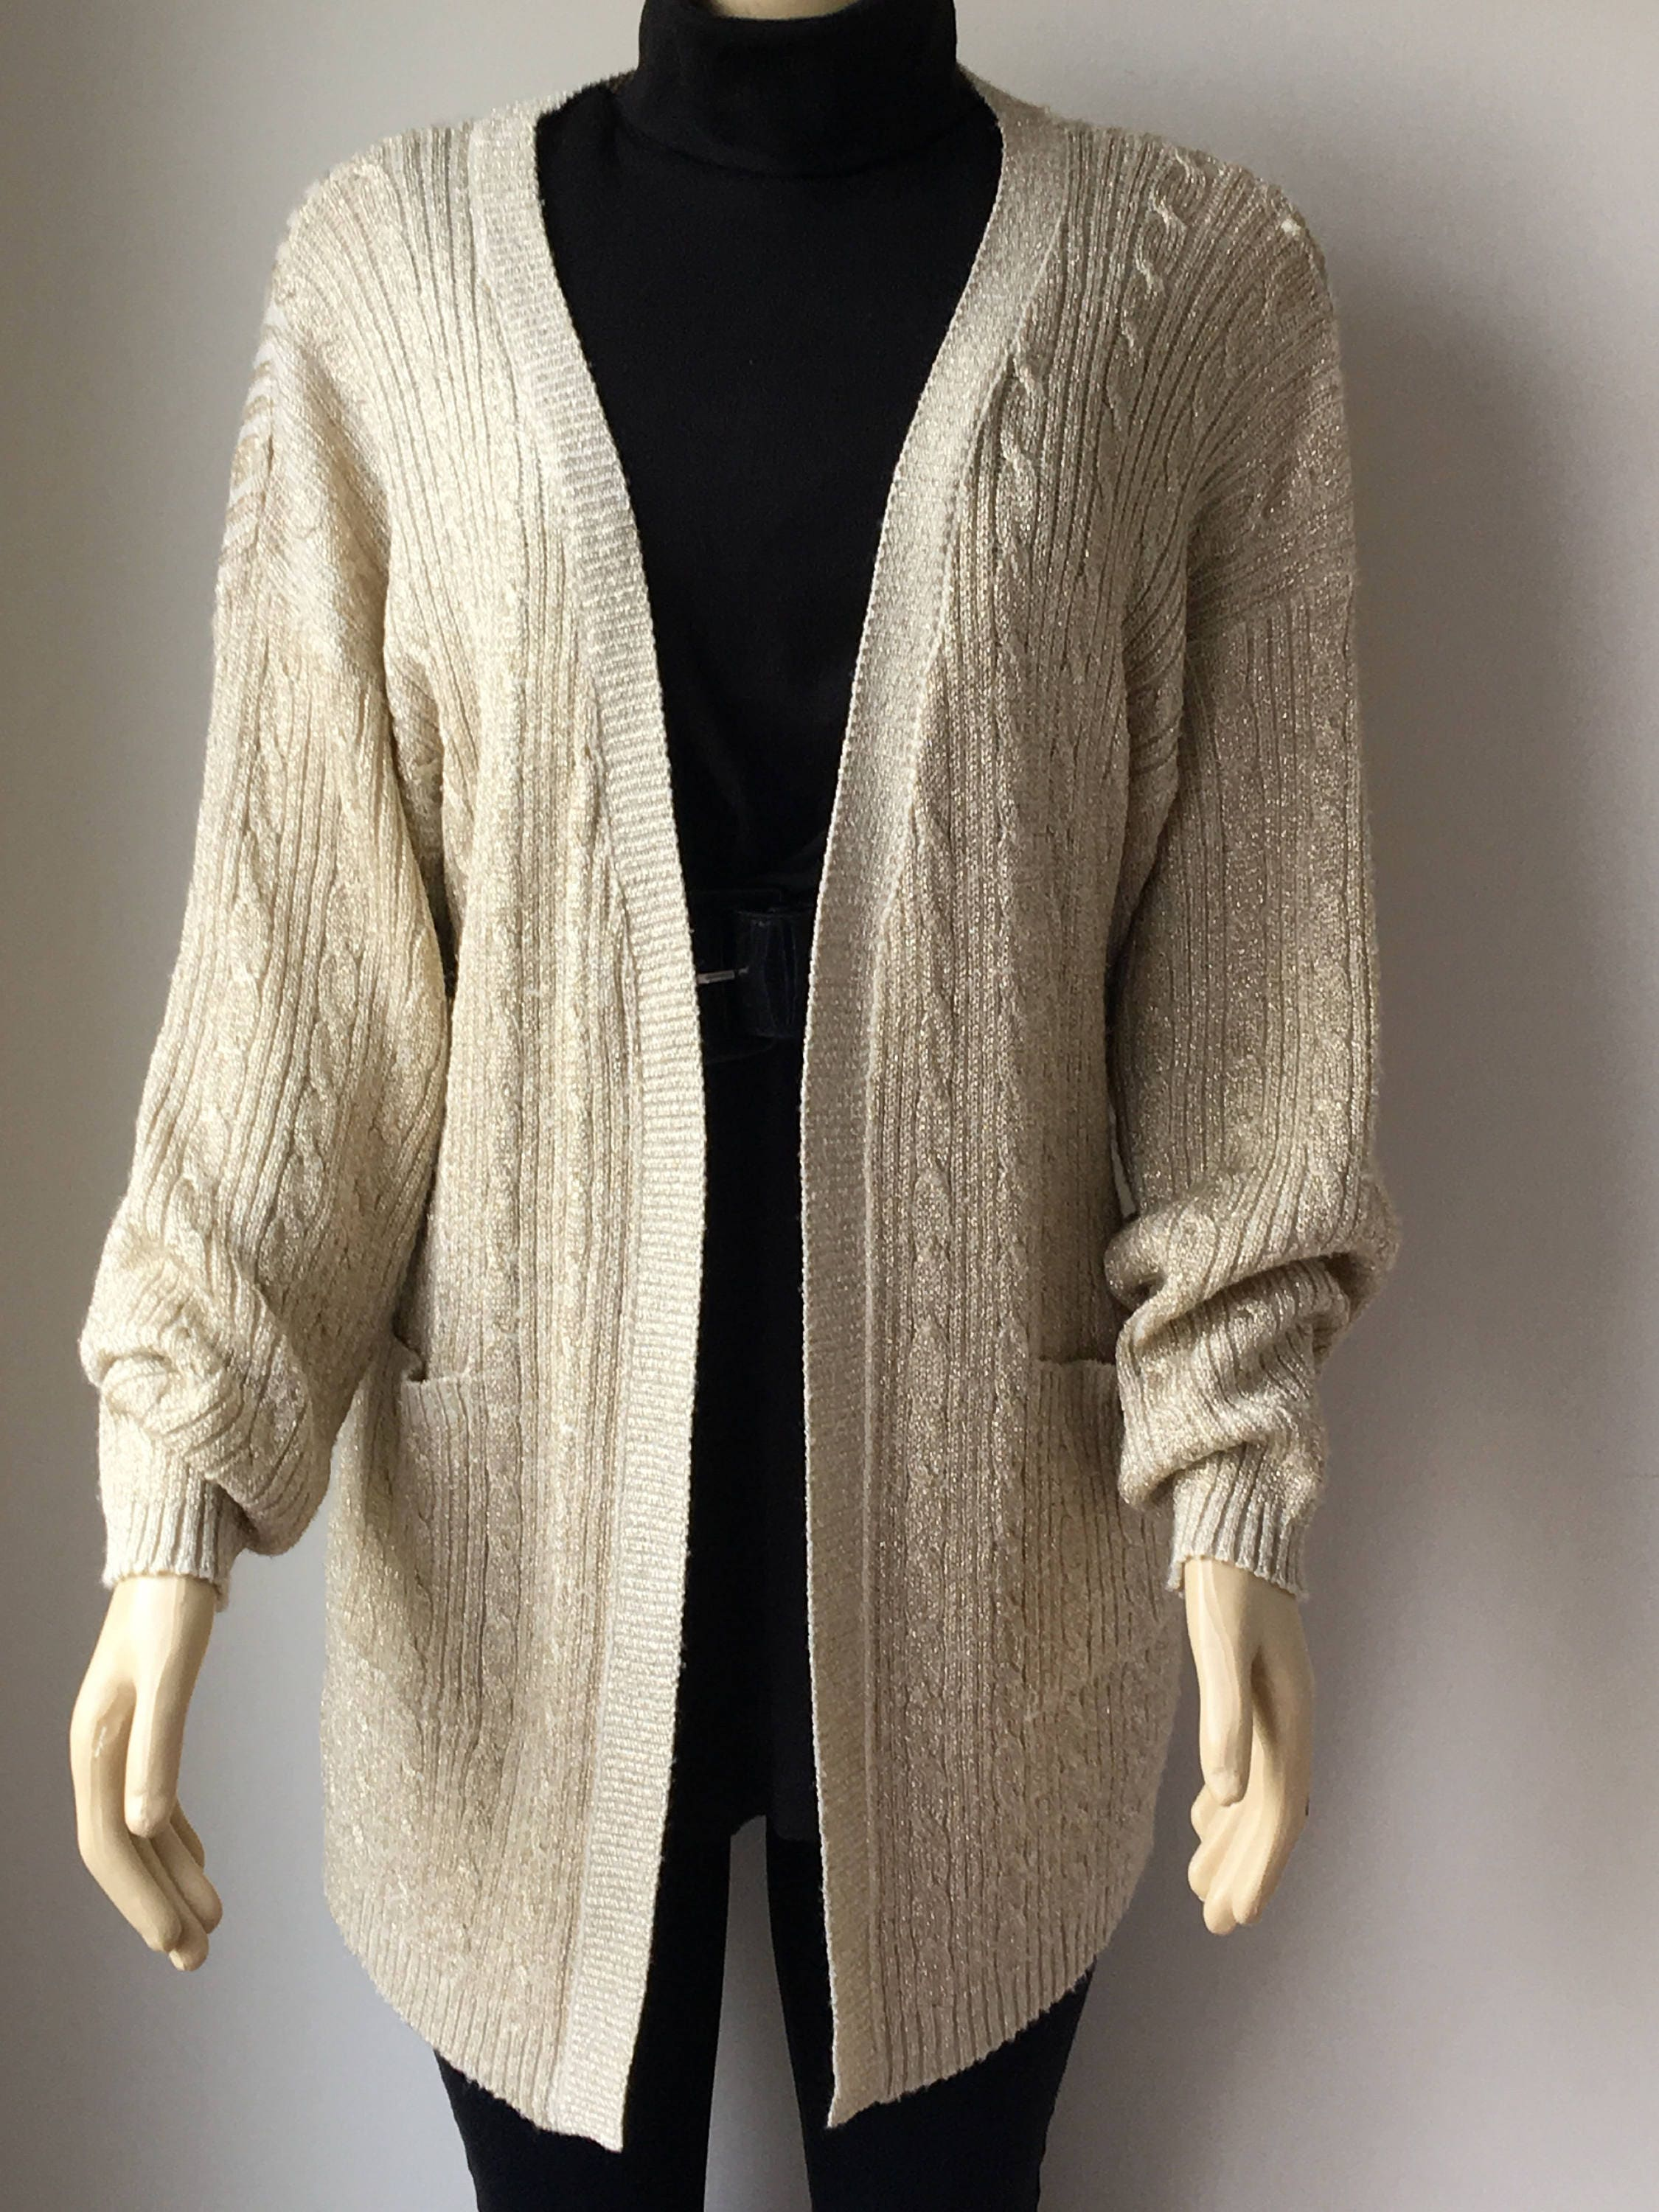 Gold Metallic cardigan shimmering Long sweater Open front